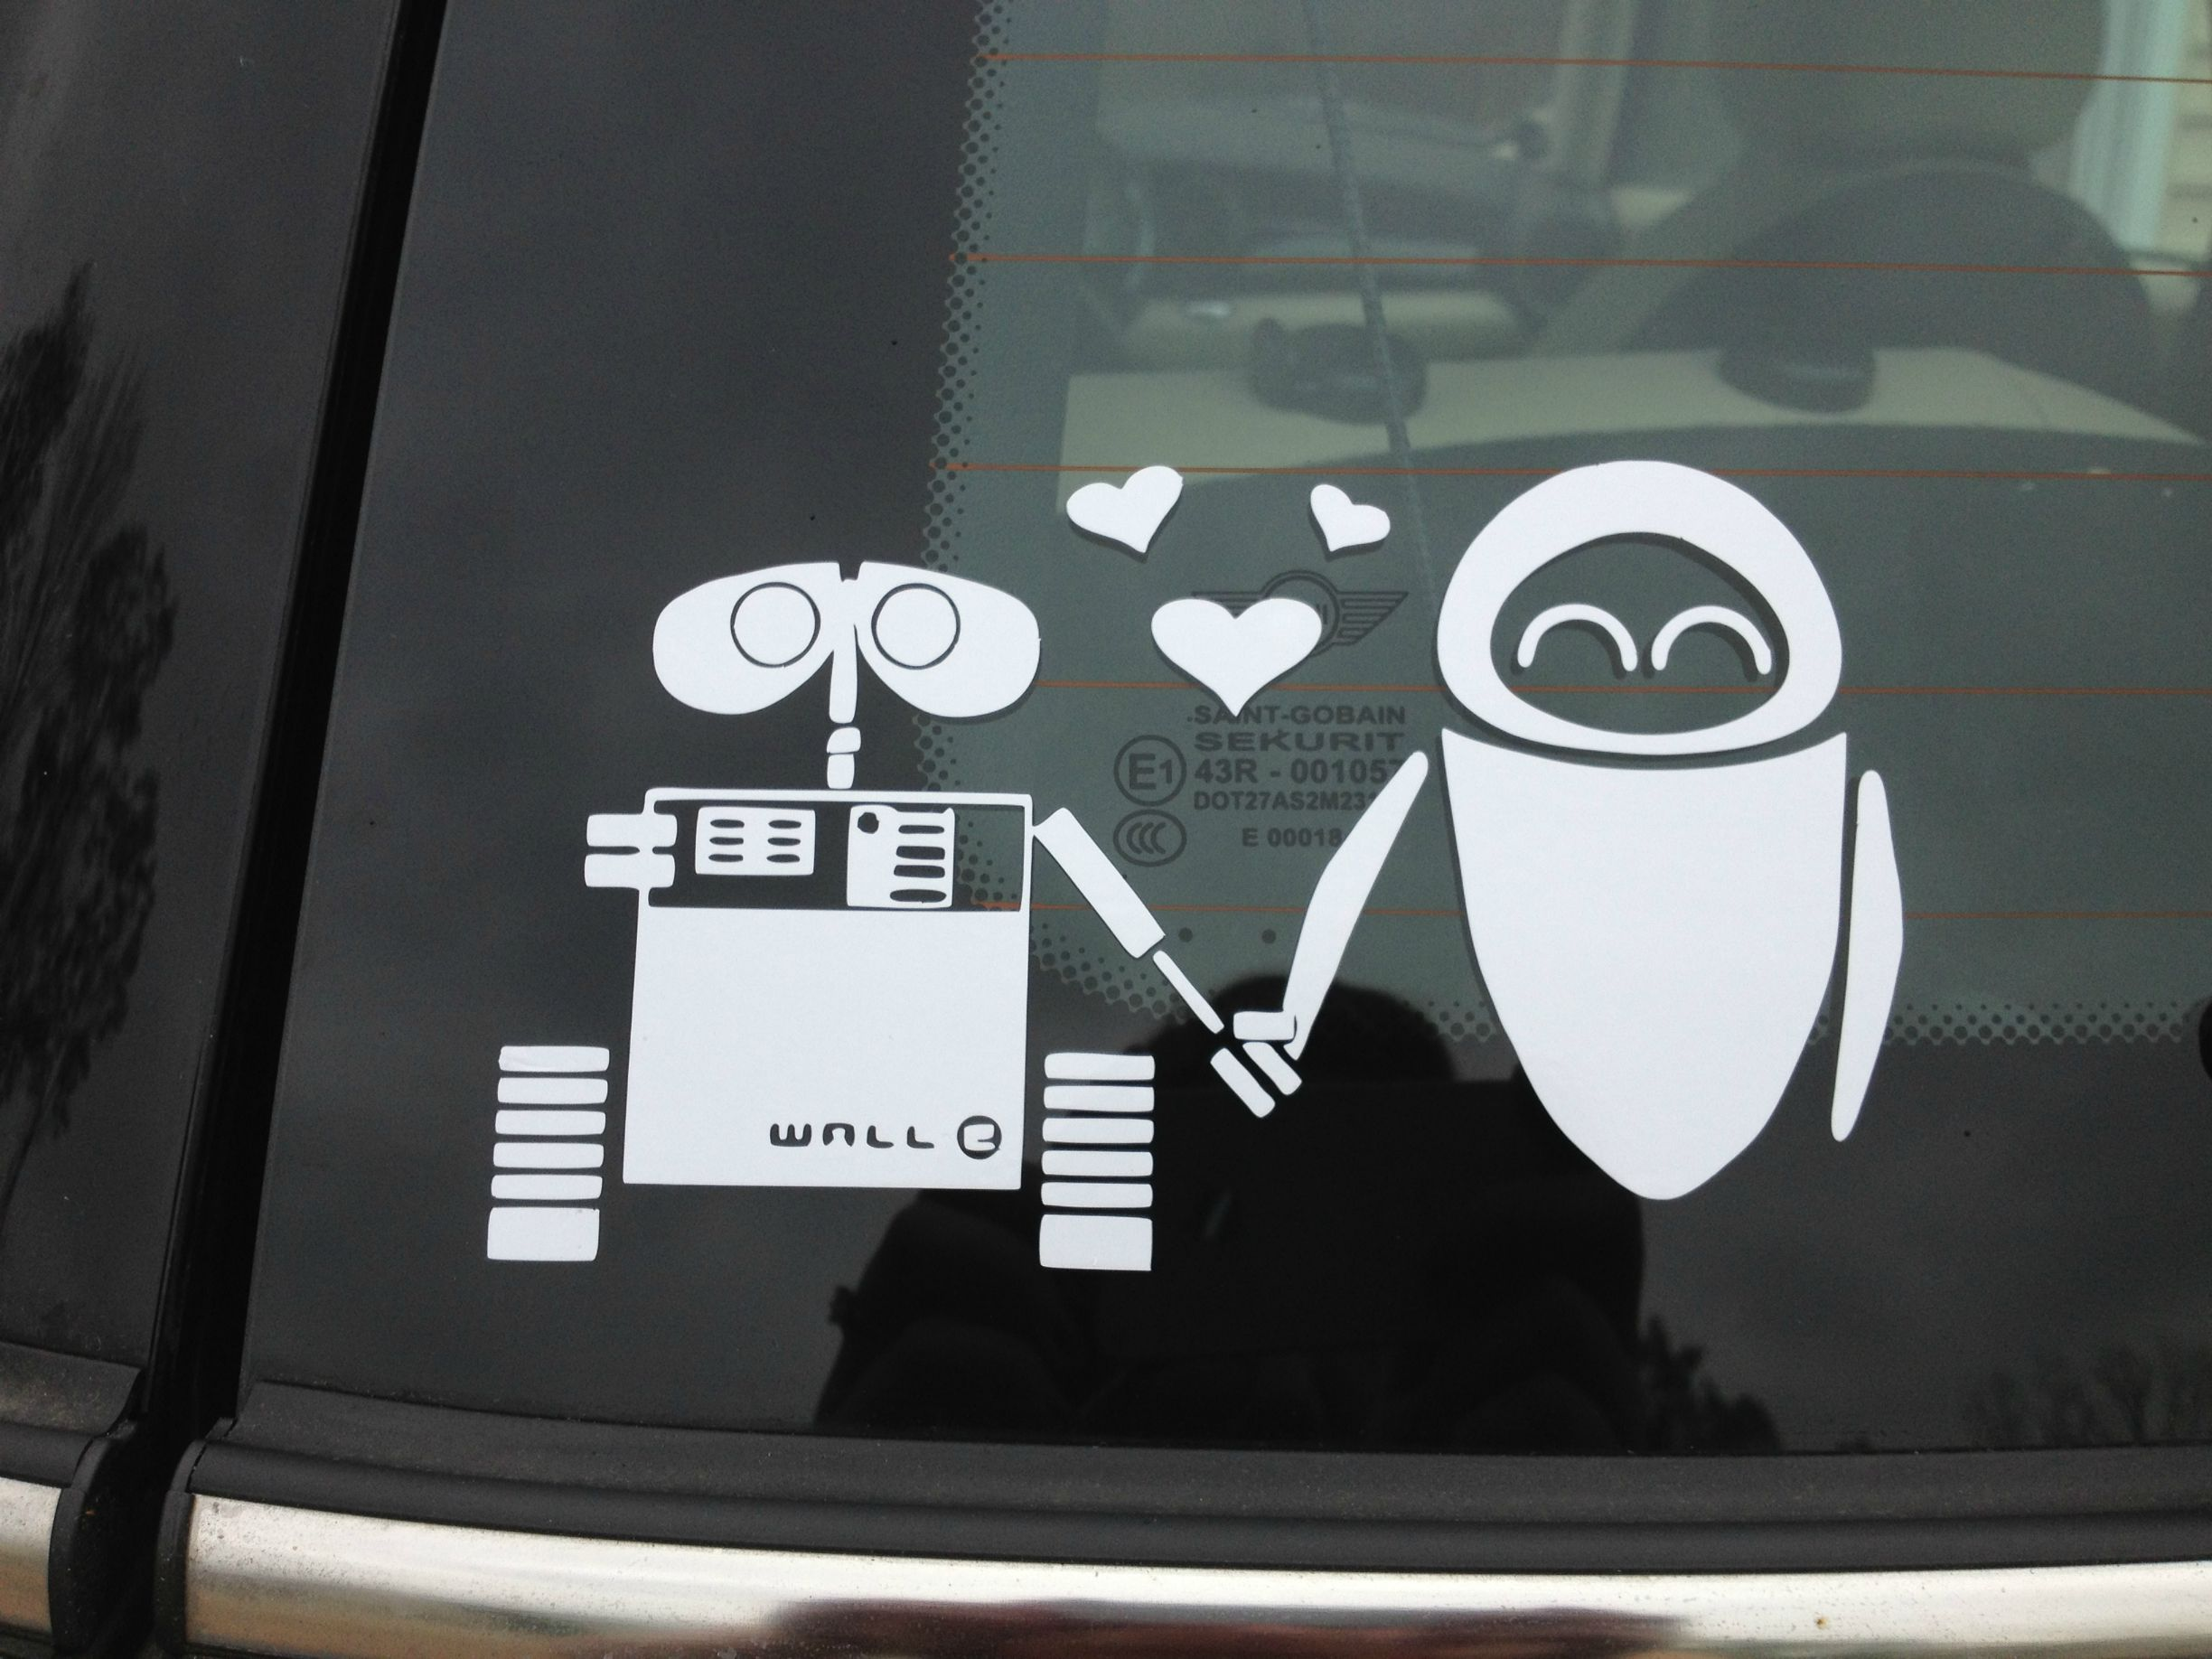 Some Families Have Stick Figure Decals On Their Cars My Husband - Rear window hunting decals for trucksduck hunting rear window graphics best wind wallpaper hd